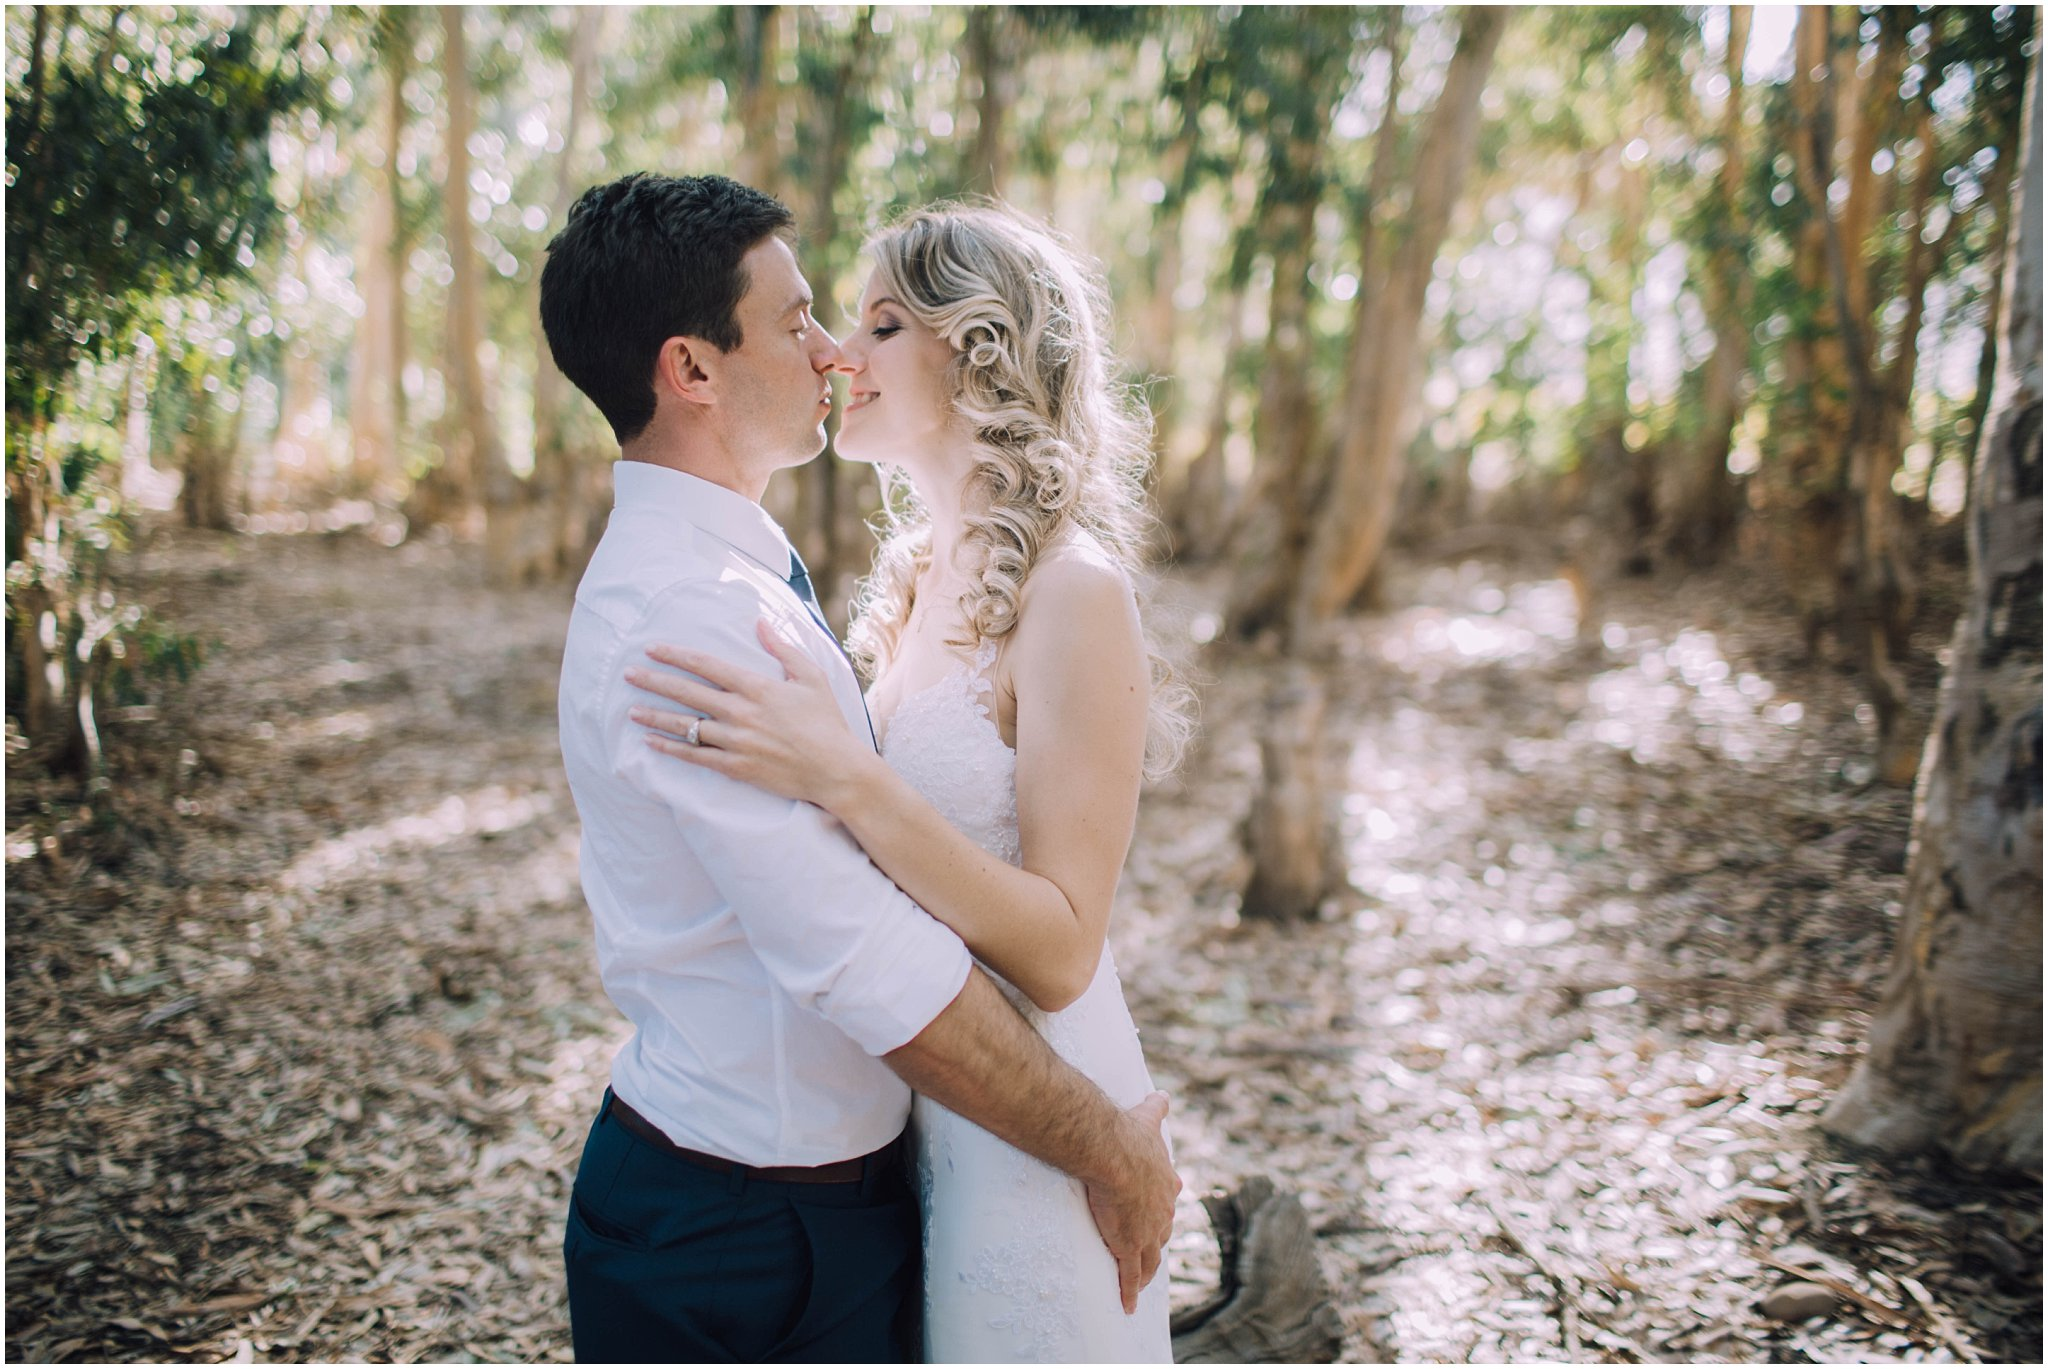 Ronel Kruger Cape Town Wedding and Lifestyle Photographer_2865.jpg